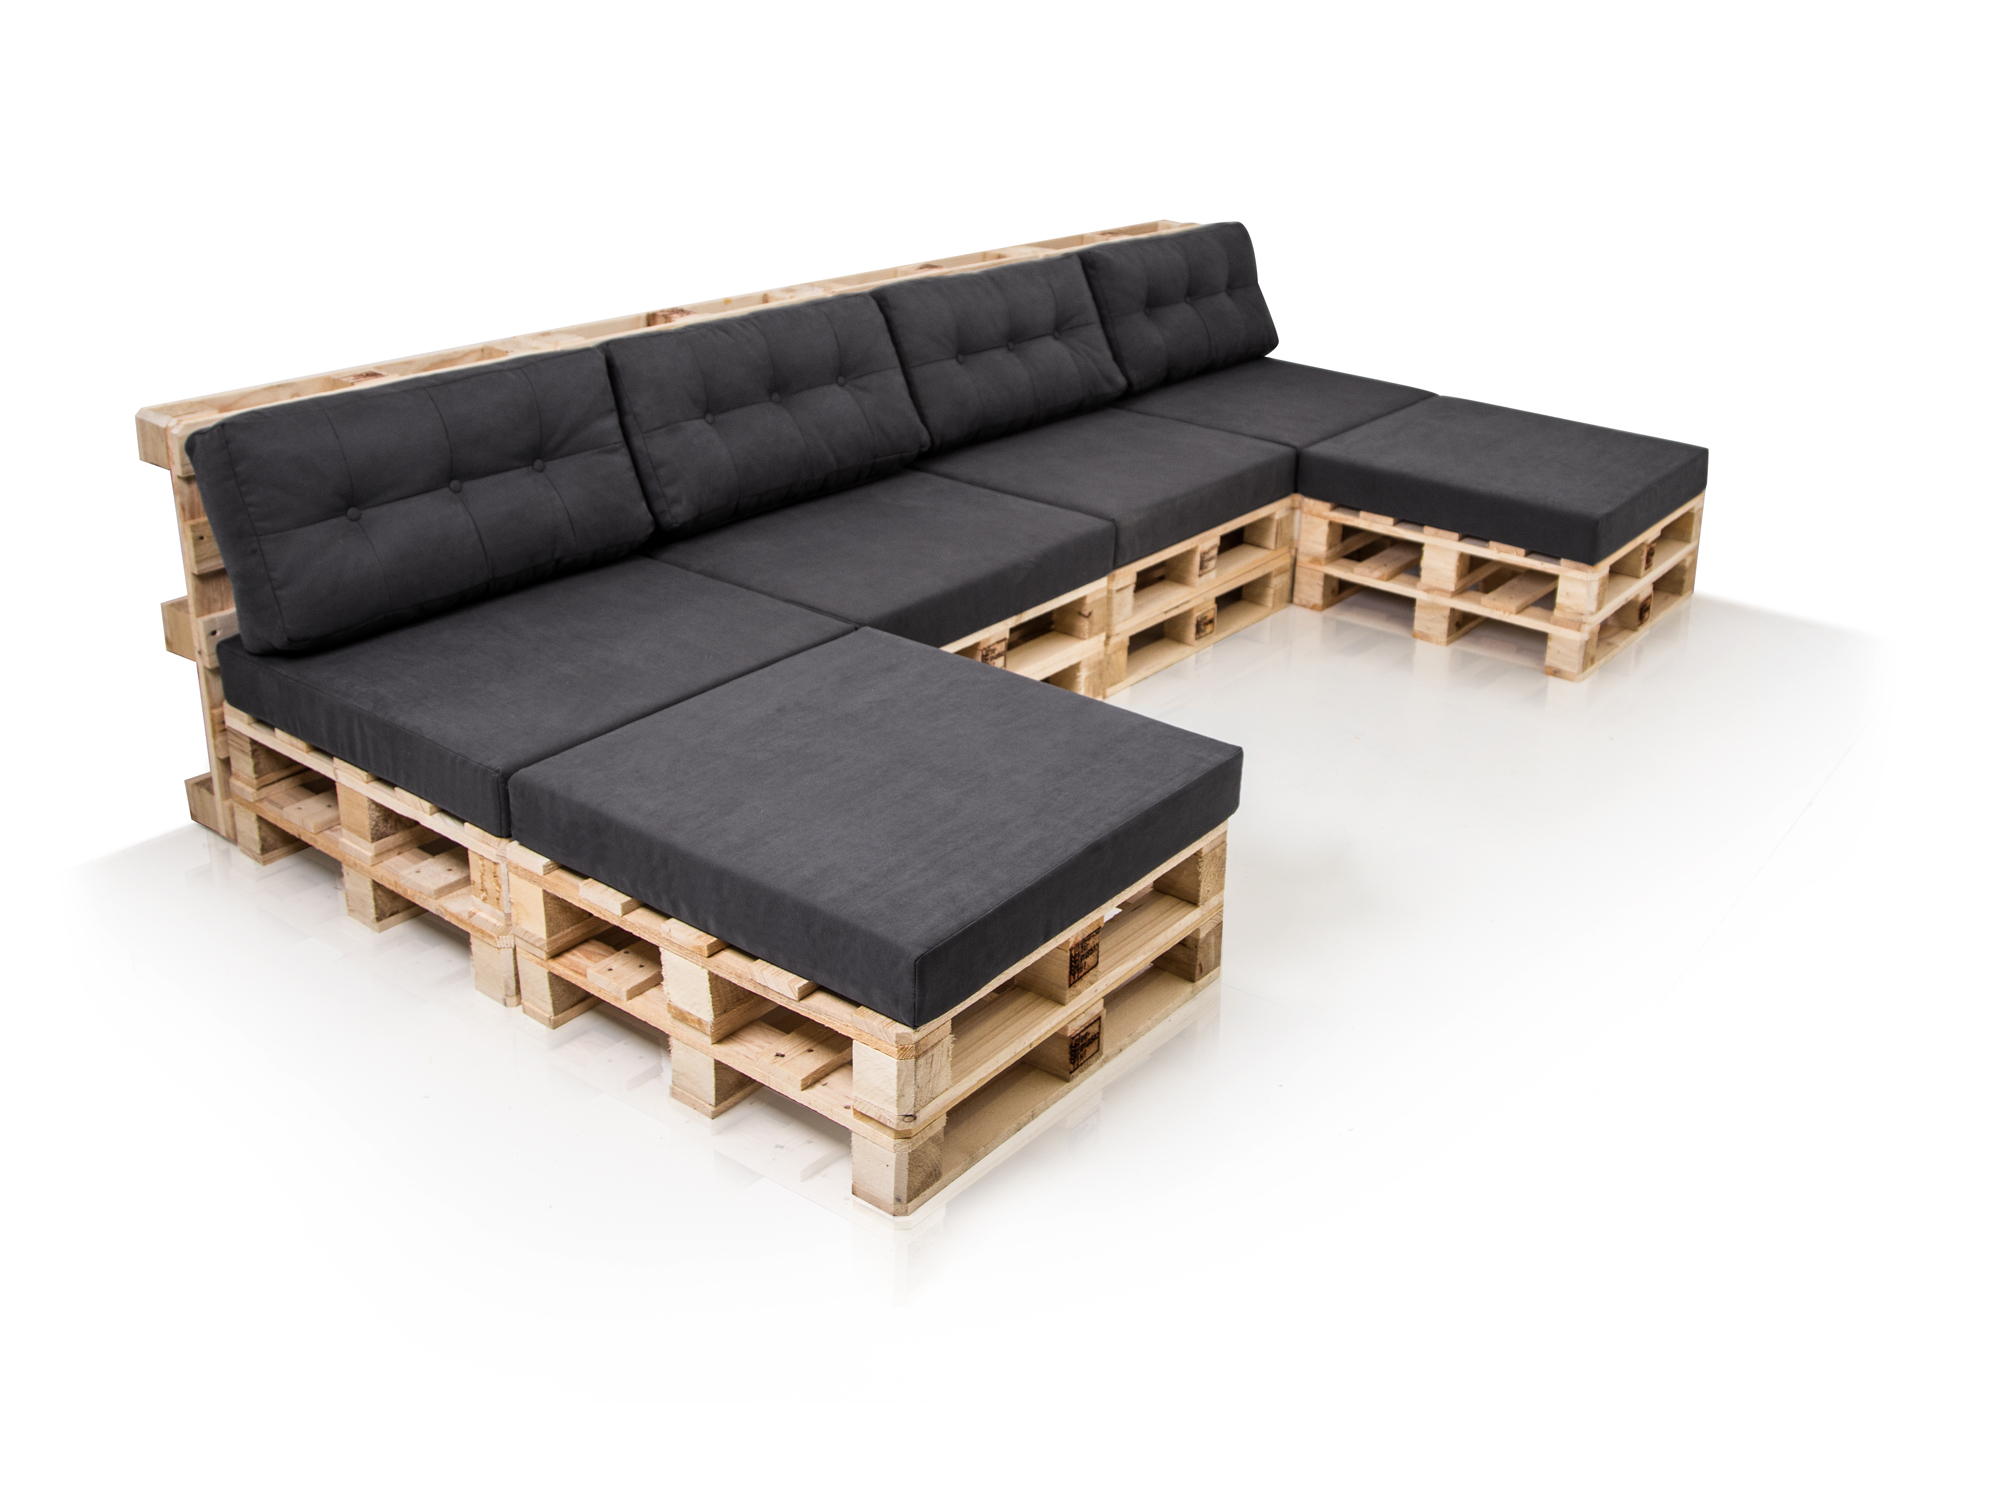 paletten sofa kaufen interesting er set sitzpolster rckenkissen hellgrau paletten sofa. Black Bedroom Furniture Sets. Home Design Ideas